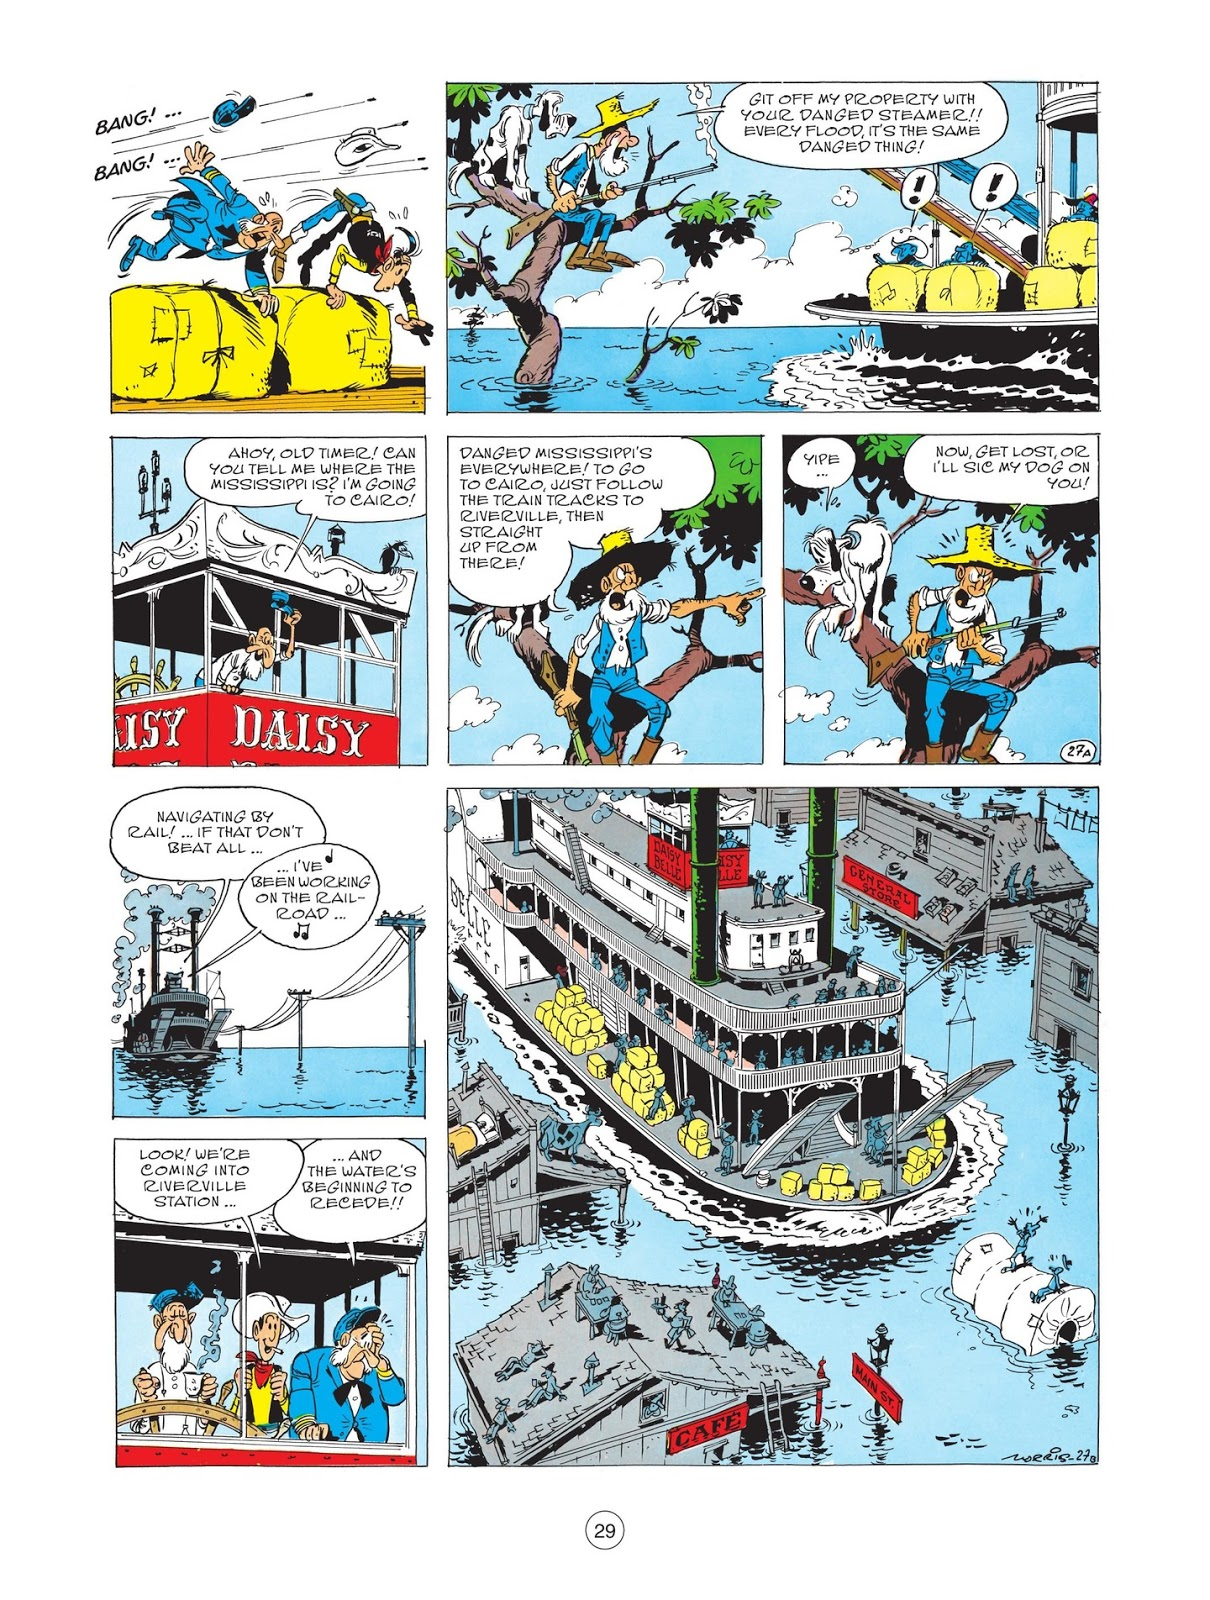 Lucky Luke Steaming up the Mississippi review